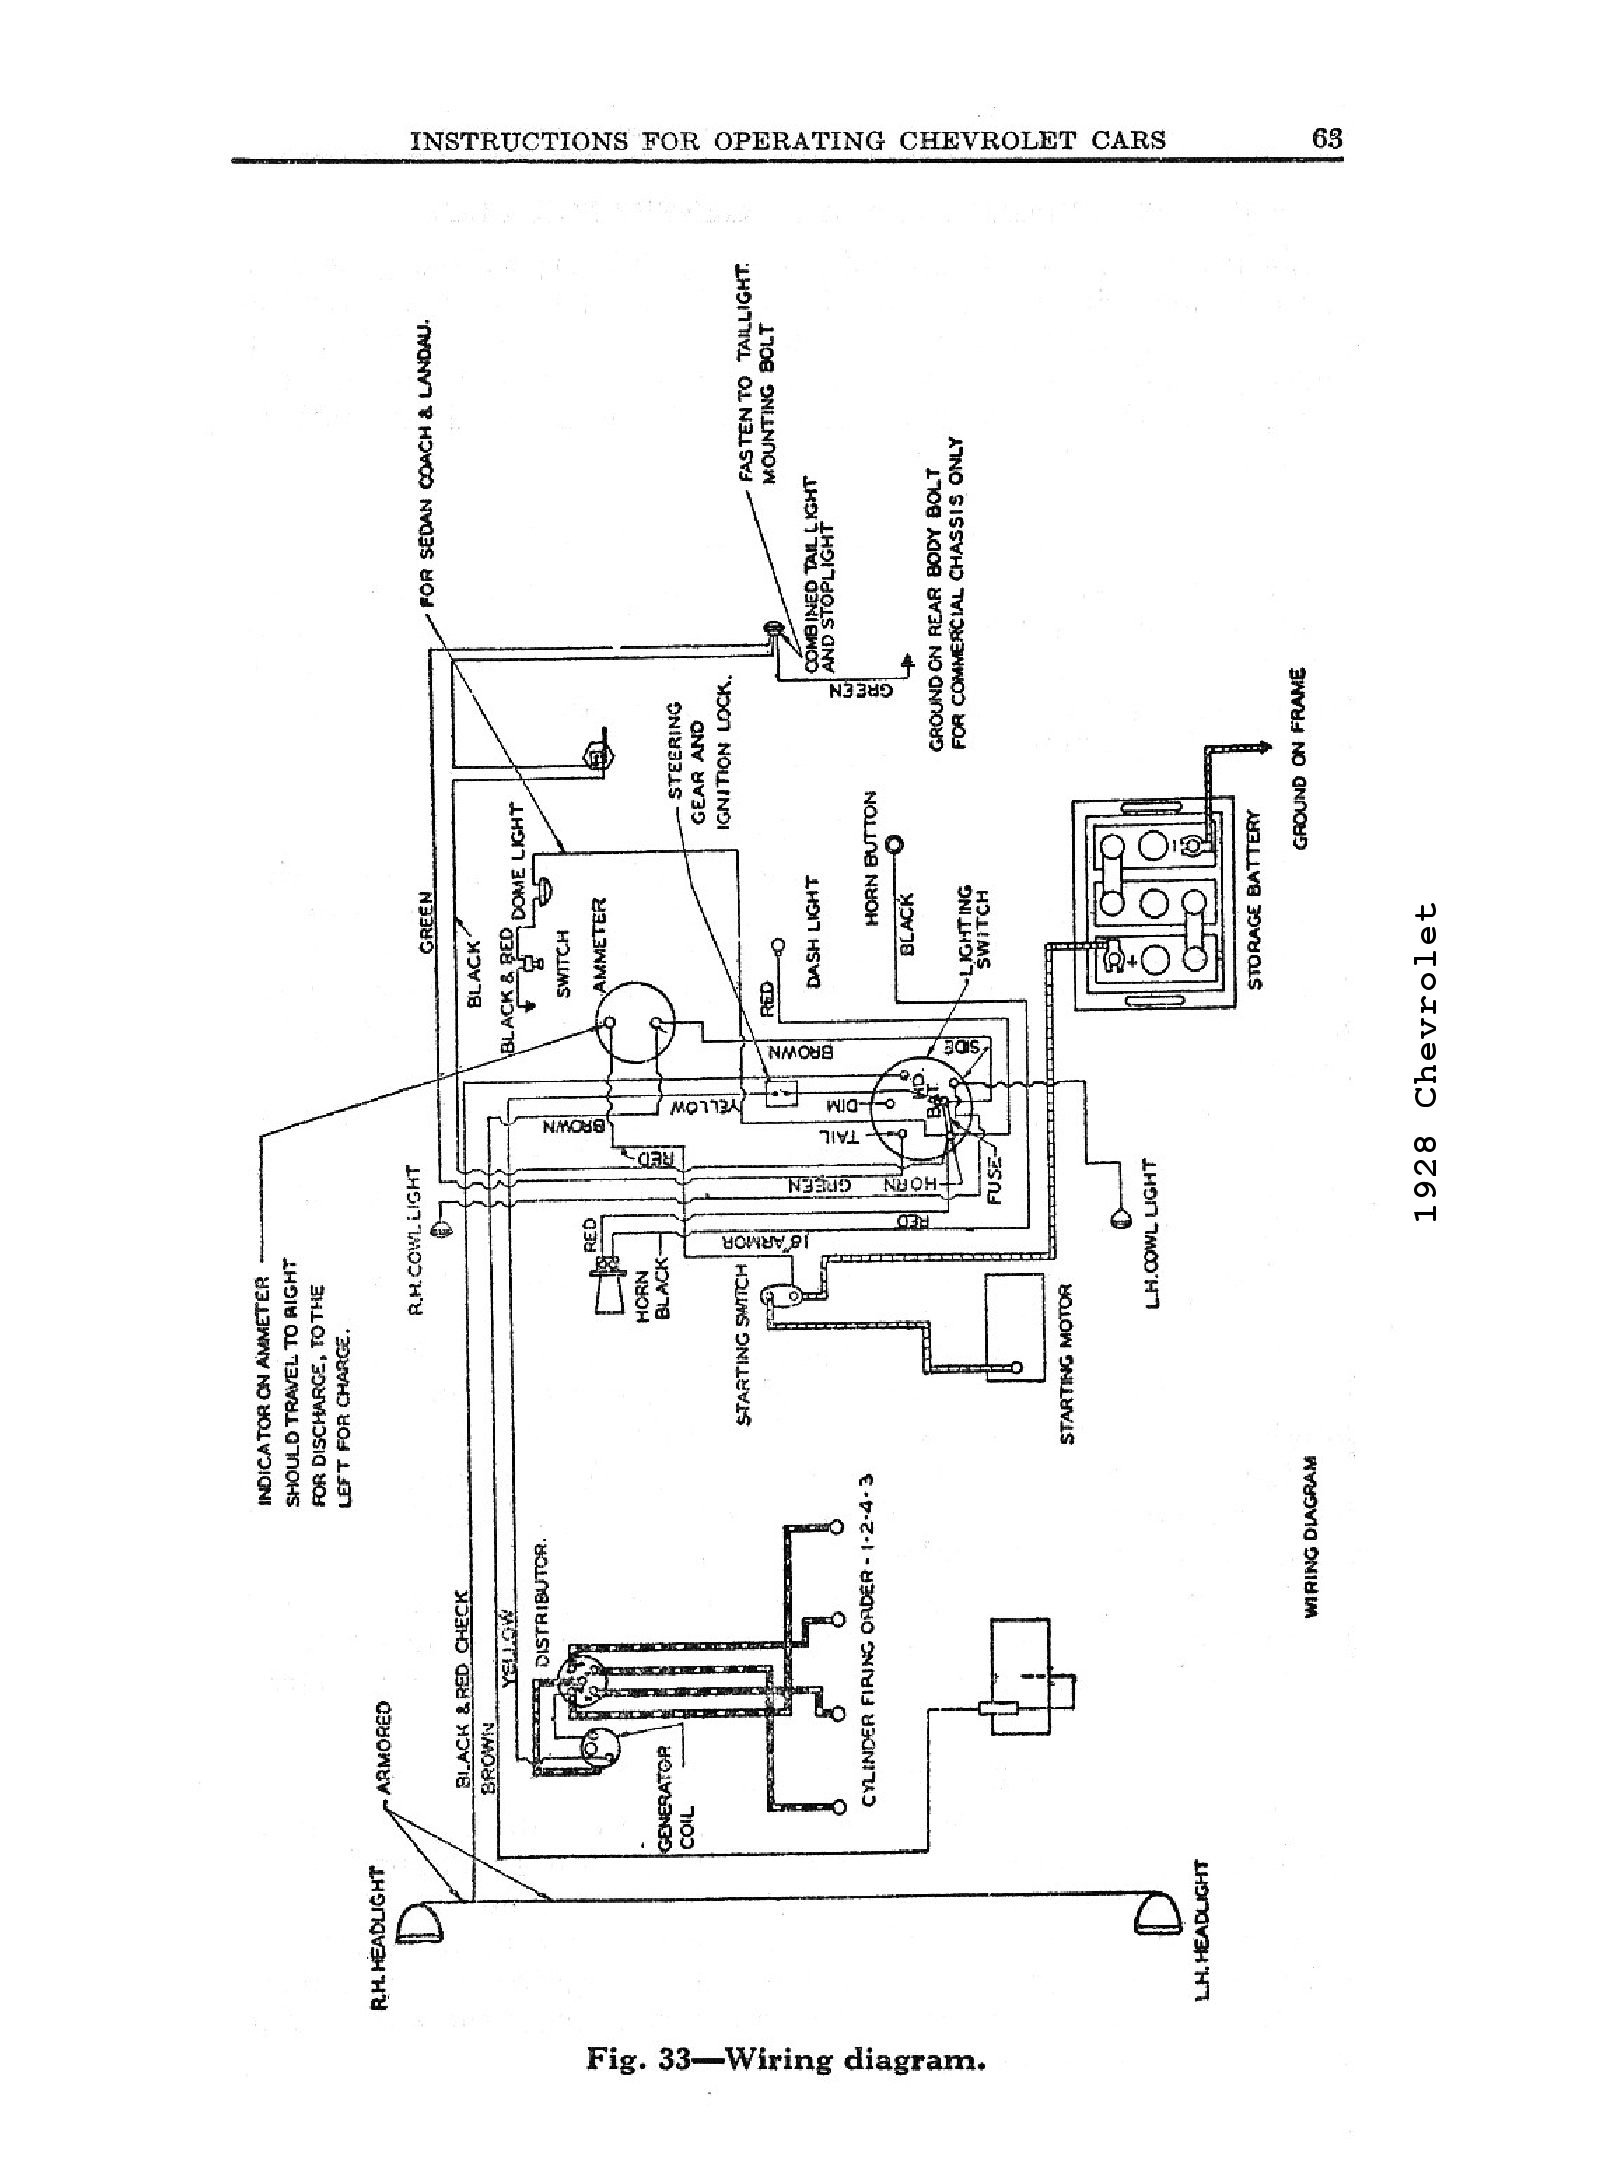 1937 Ford Truck Wiring Diagram Will Be A Thing 1955 1960 Dodge D100 Schematic Rh Theodocle Fion Com 1931 Model 1929 Engine